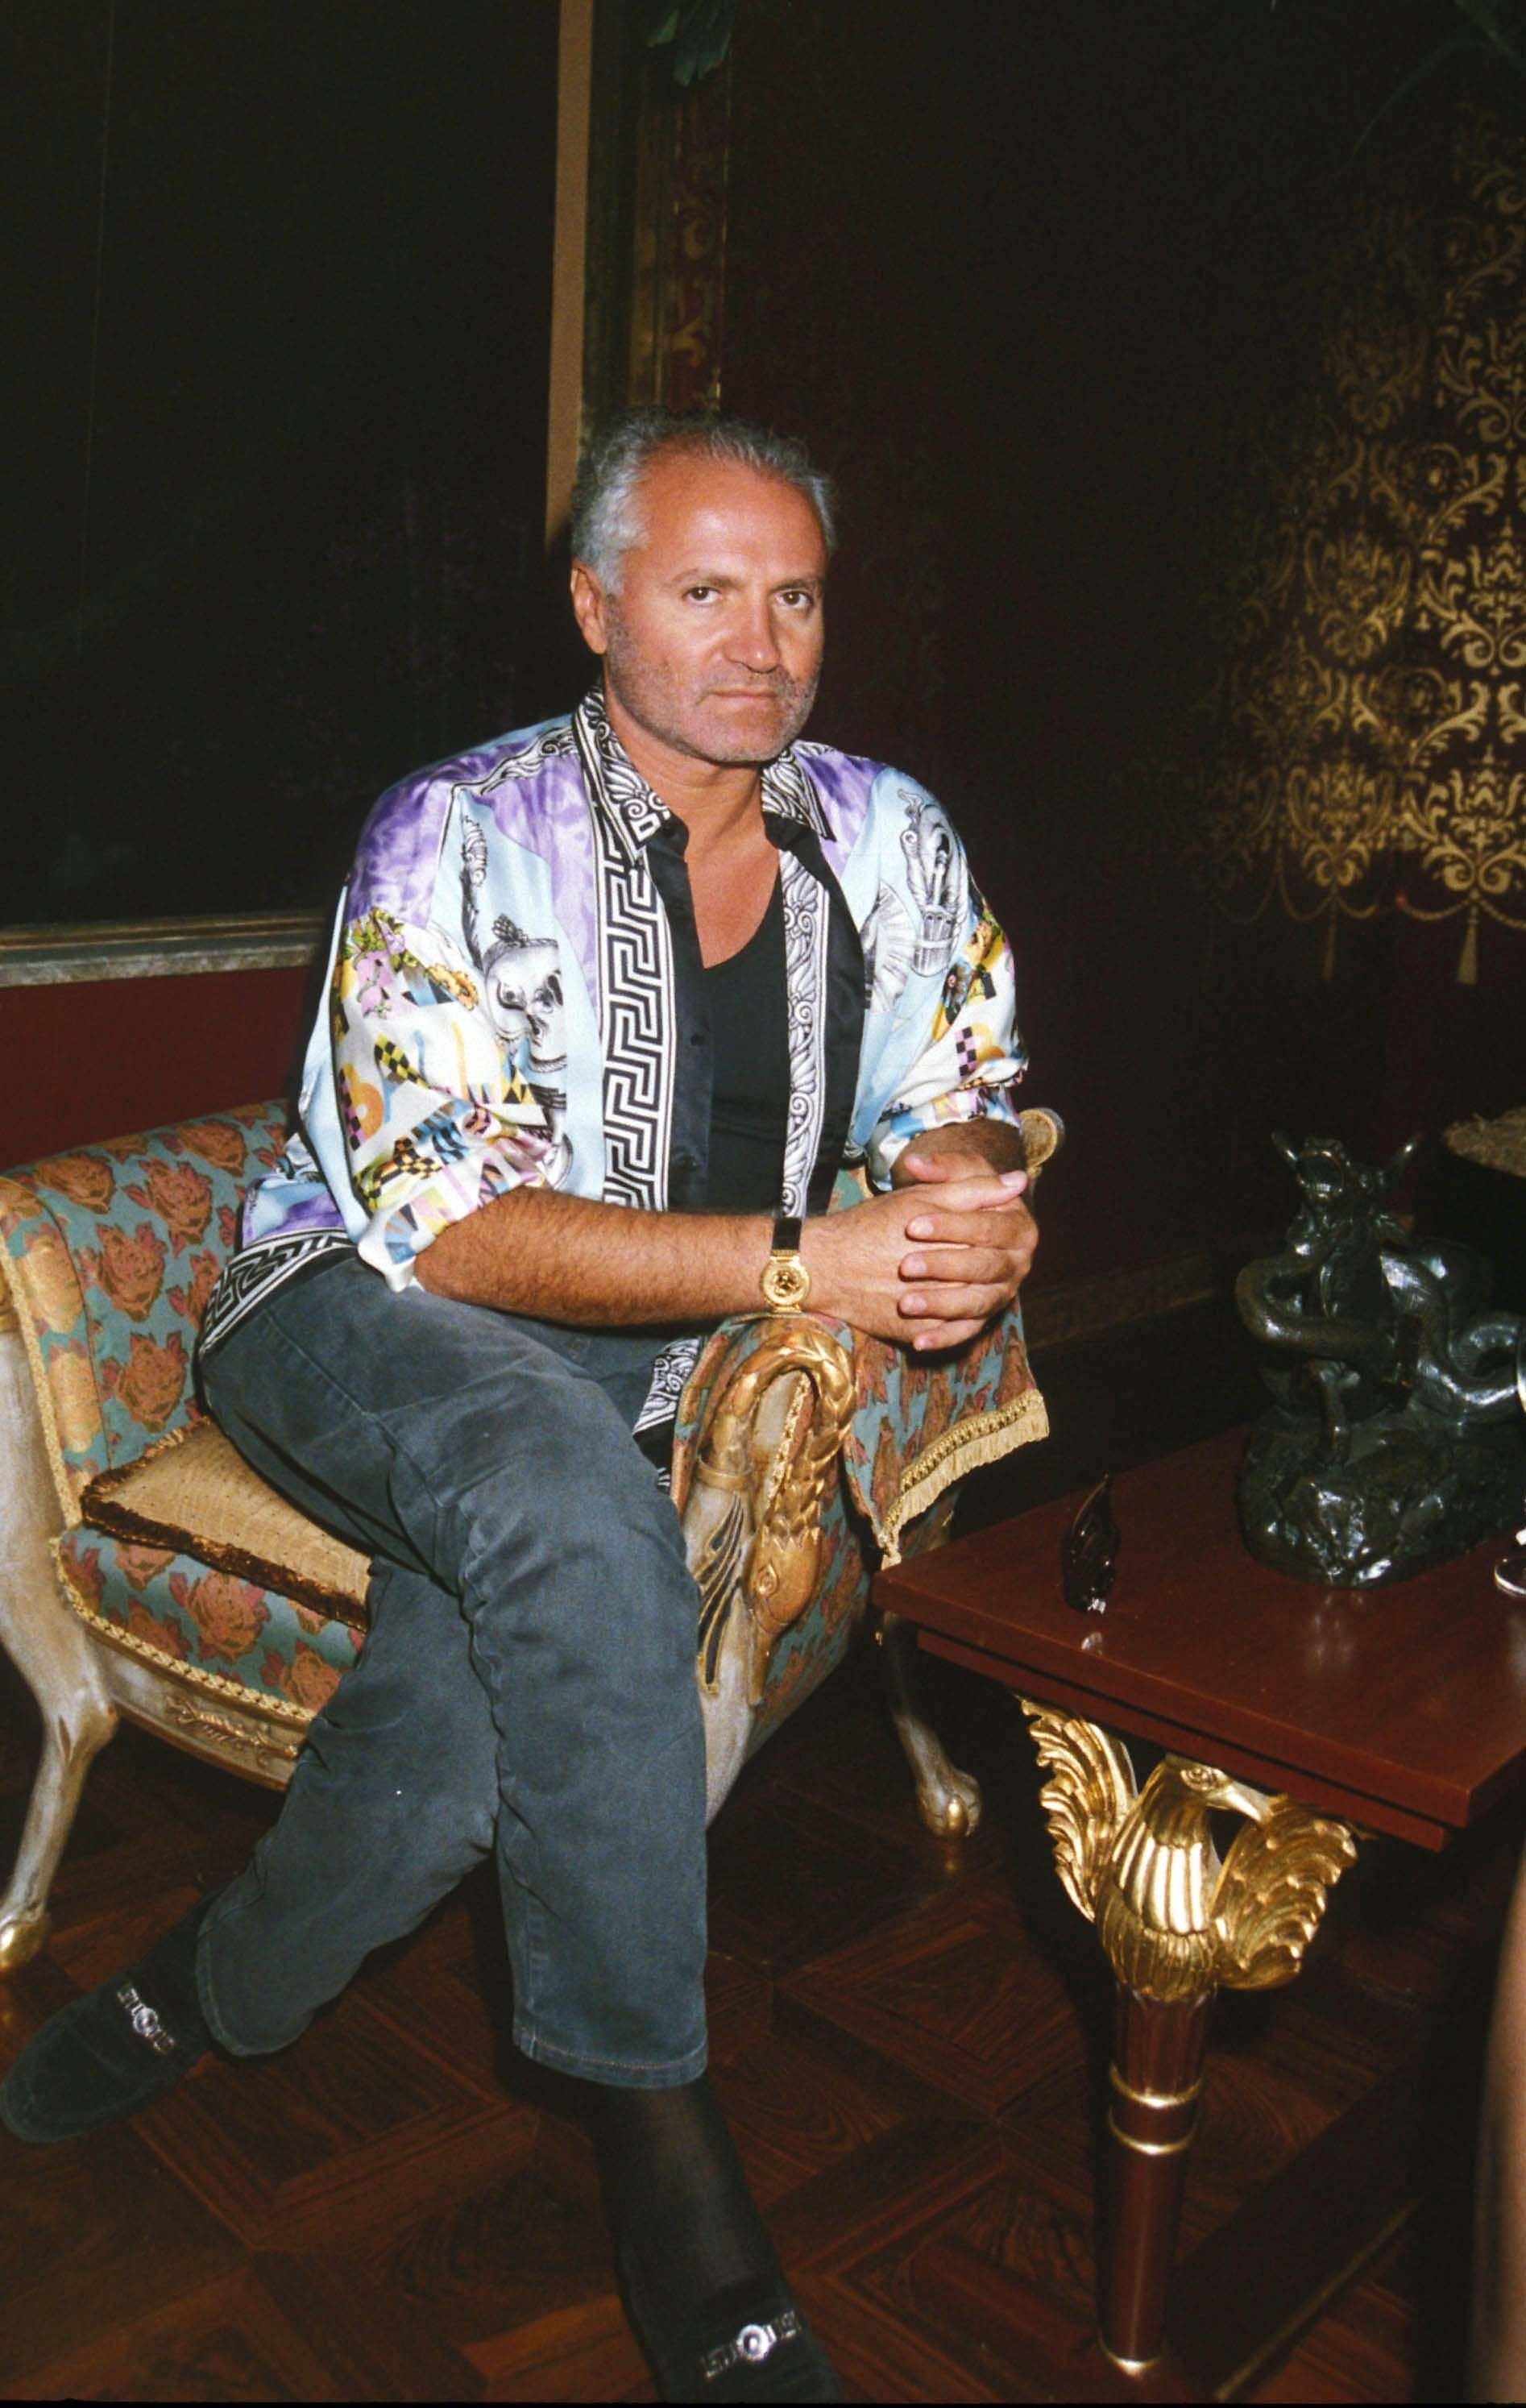 Gianni Versace at Sylvester Stallone's house warming party in the United Kingdom, circa 1991   Photo: Dave Benett/Getty Images